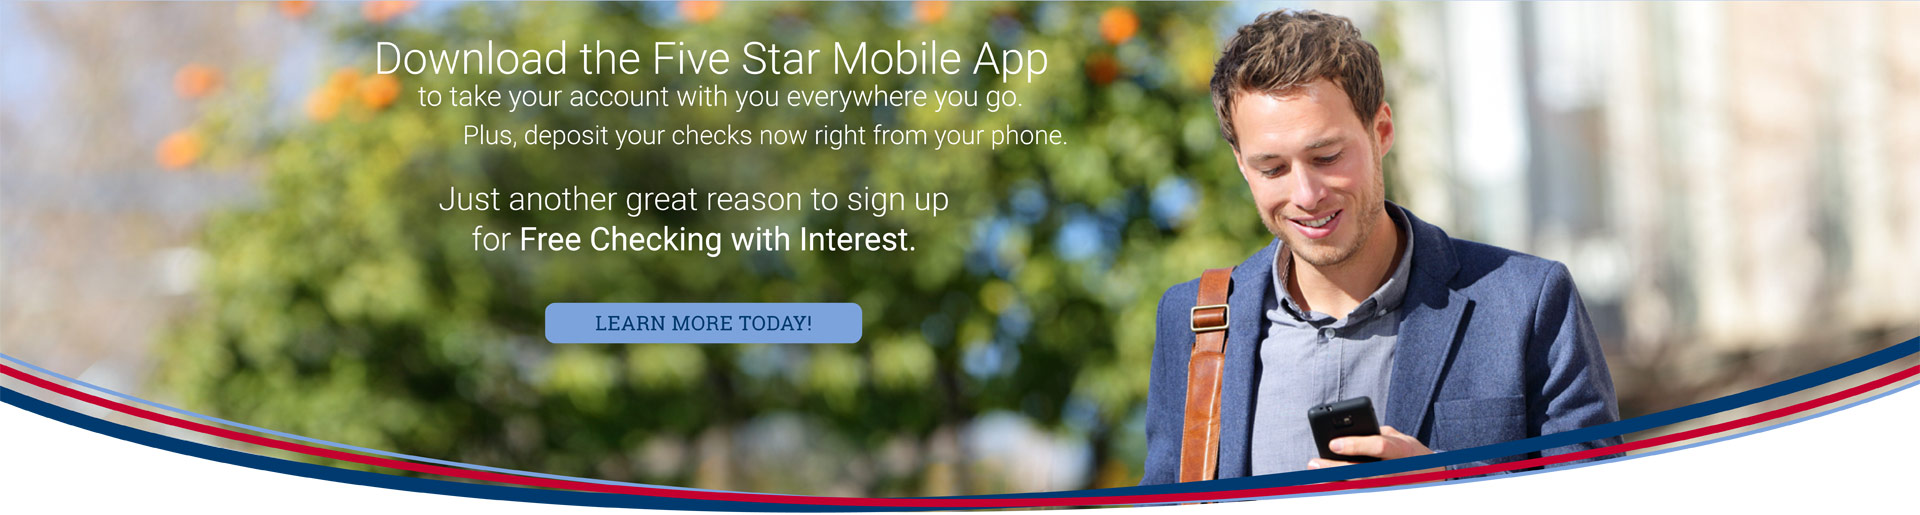 download-the-five-star-mobile-app